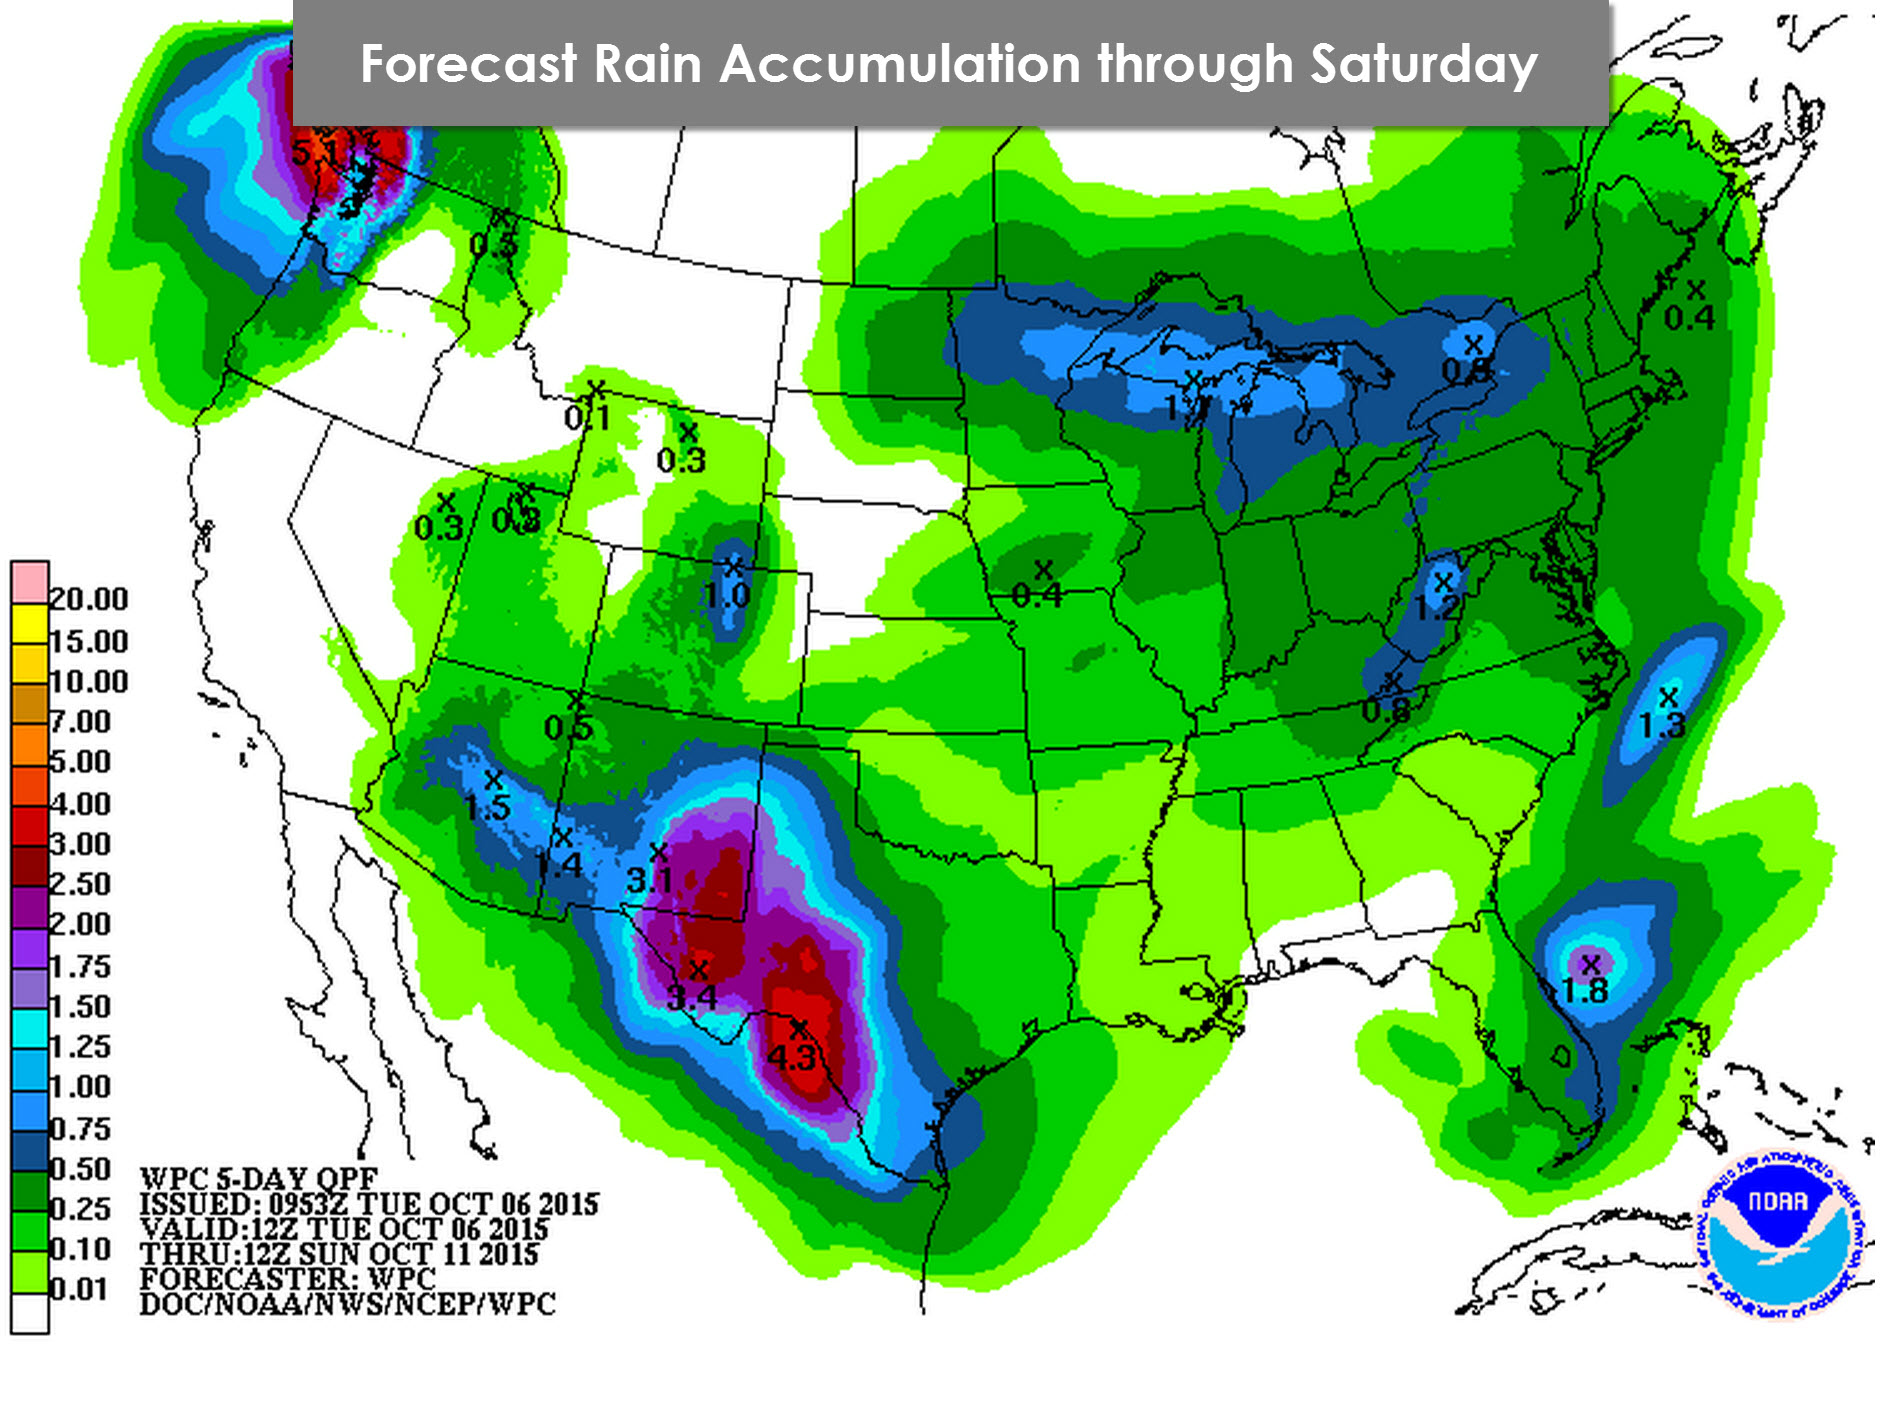 Rain Forecast from NOAA/Weather Prediction Center through Saturday